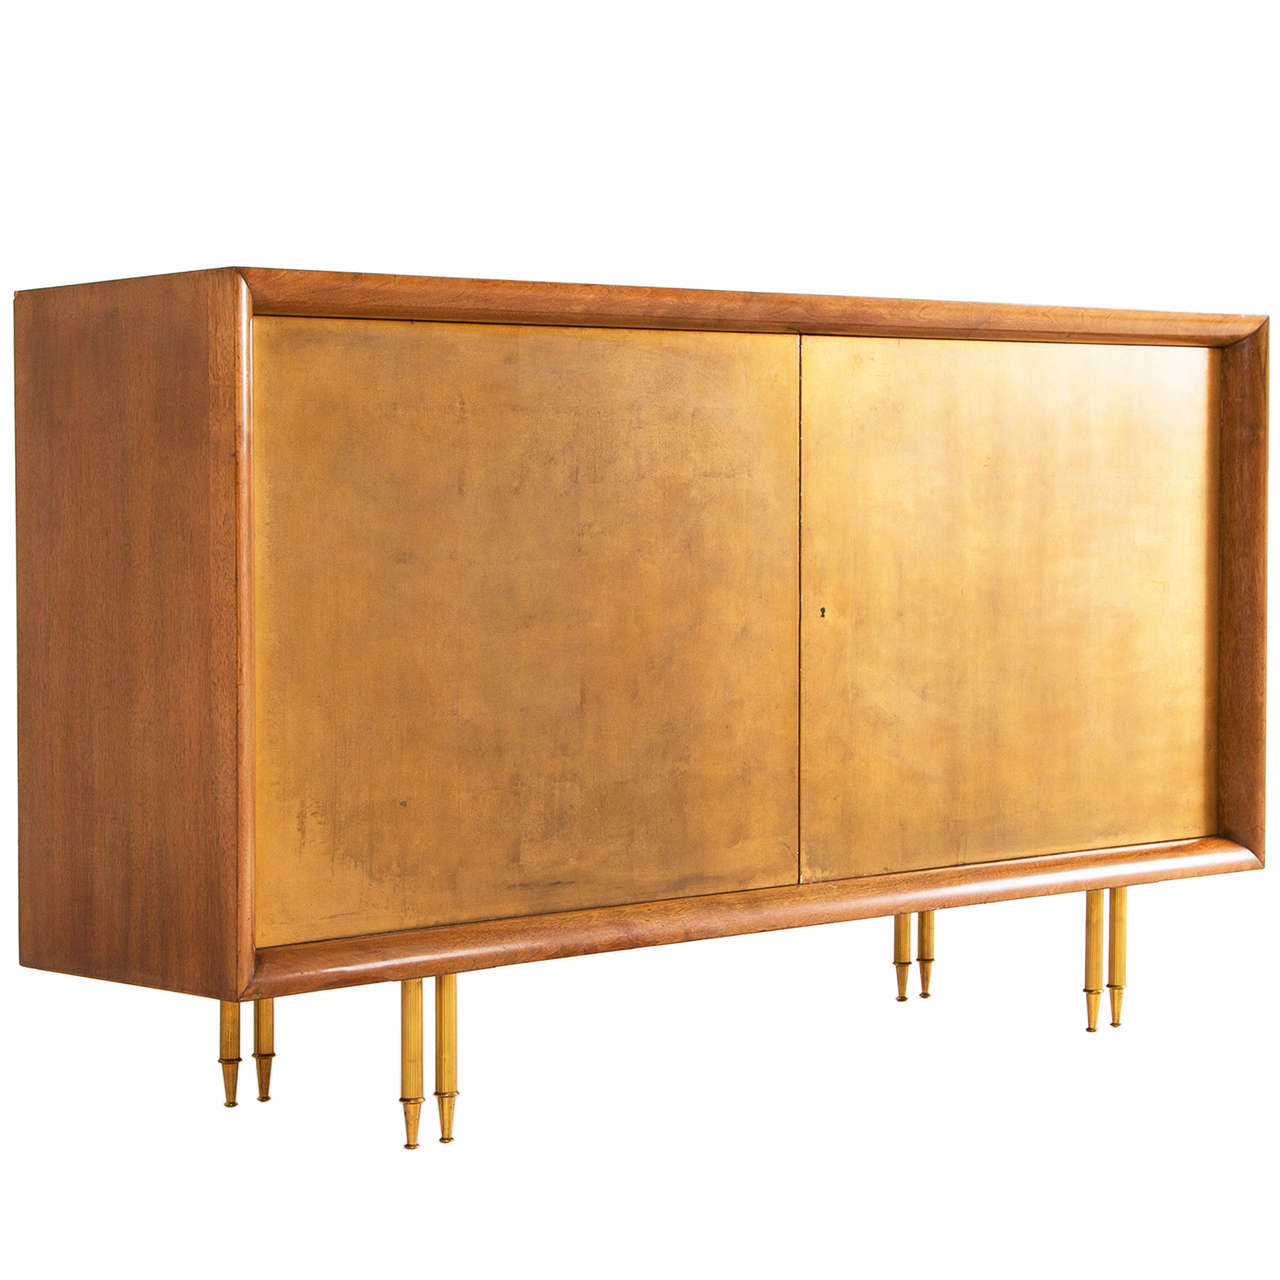 Solid walnut sideboard with gold leaf covered doors at 1stdibs for Sideboard gold